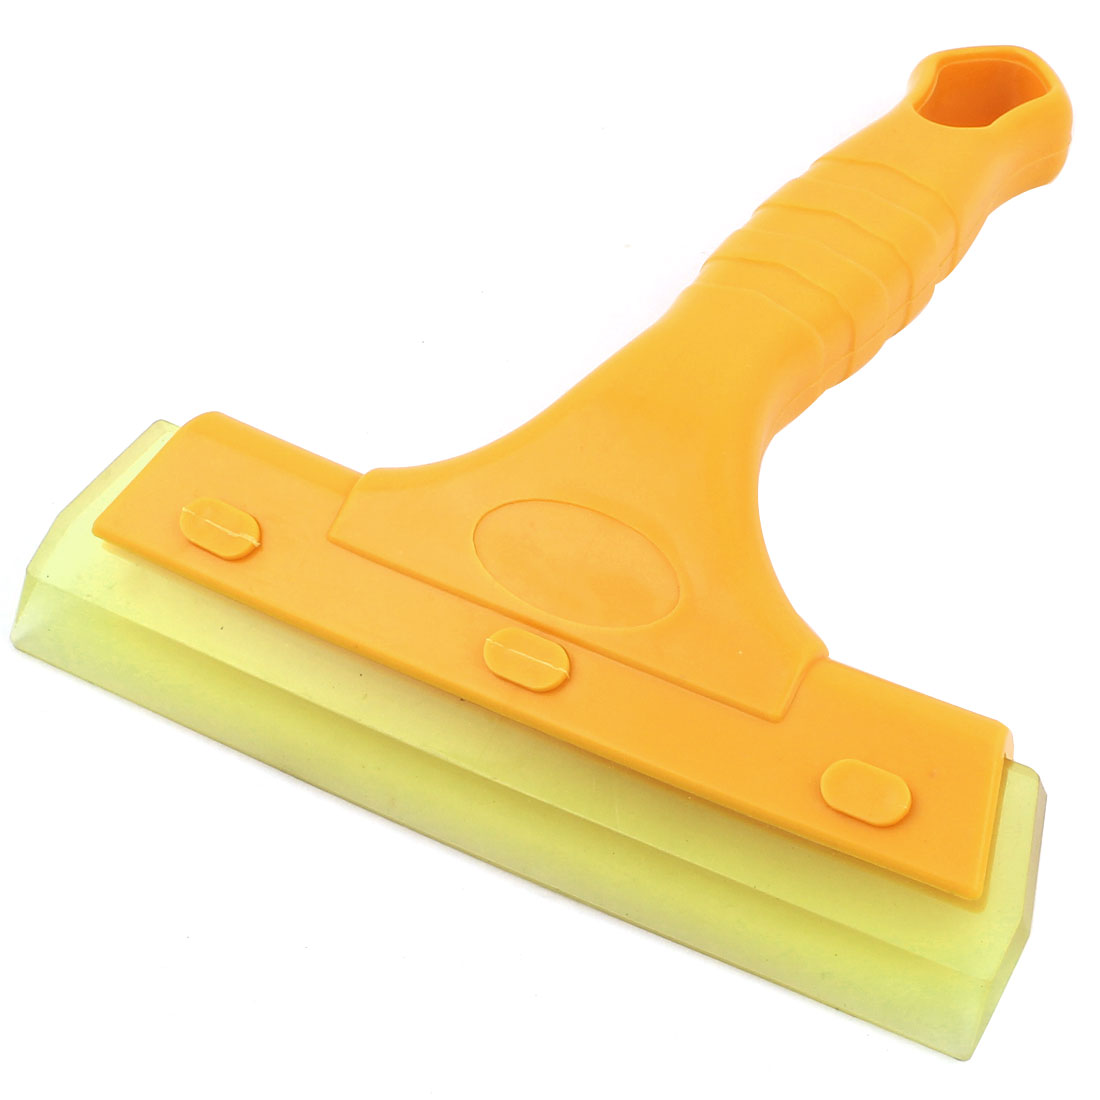 Car Windshield Yellow Plastic Nonslip Handle Film Sticker Cleaning Scraper Tool